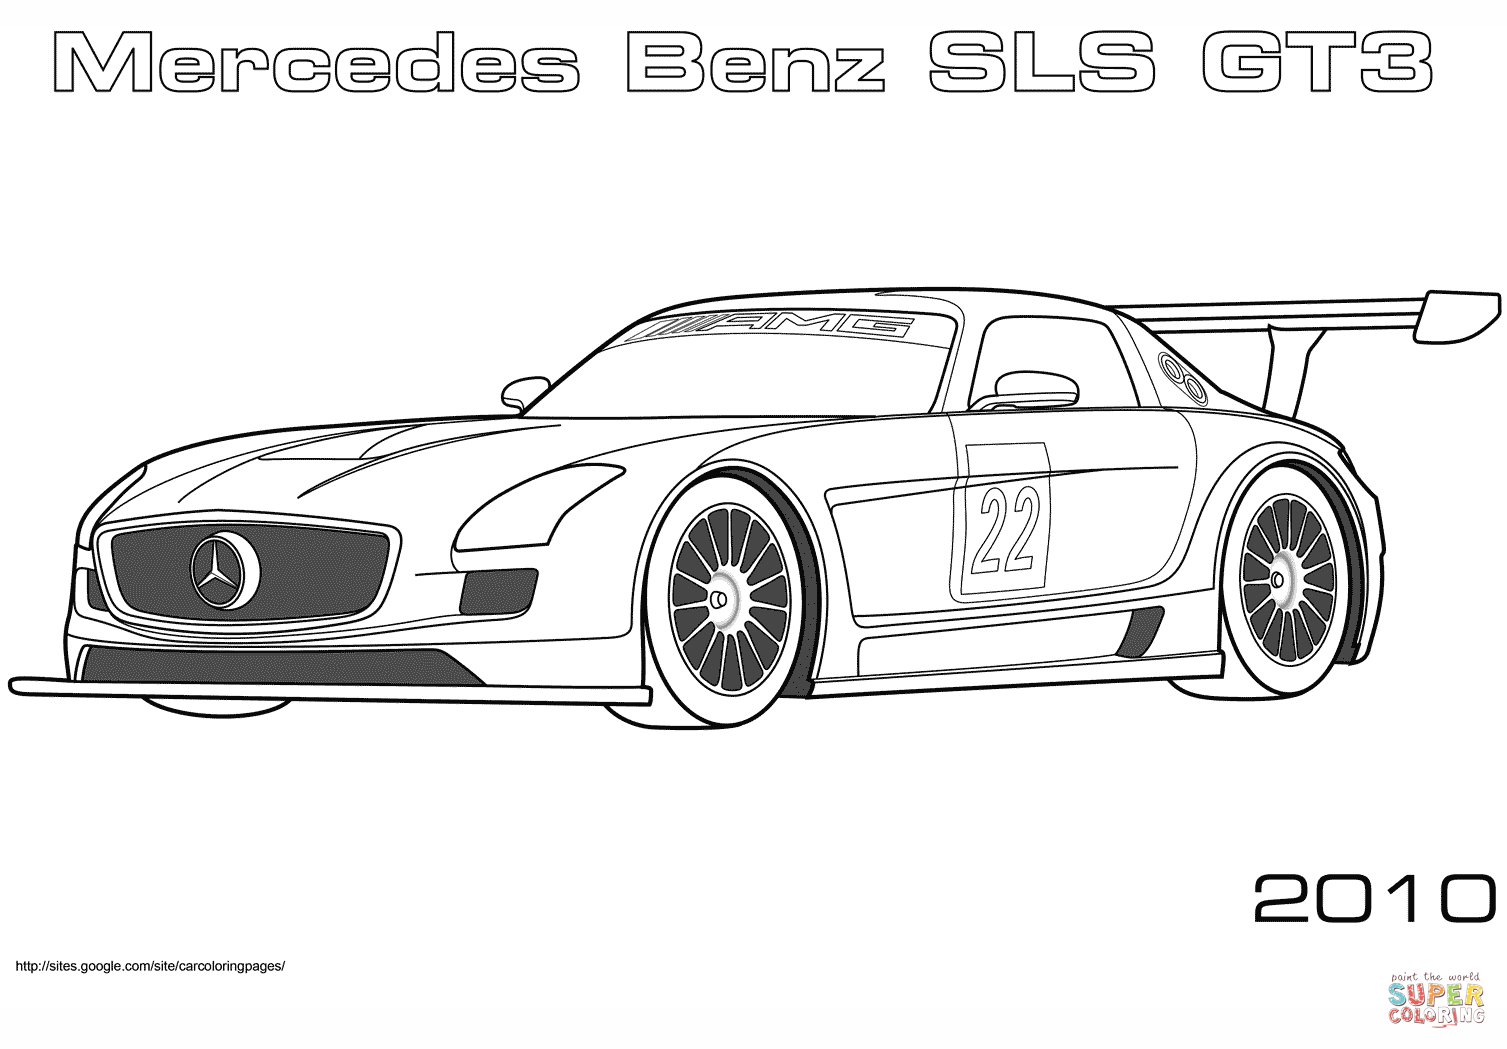 2010 Mercedes Benz Sls Gt3 Coloring Page Free Printable Coloring